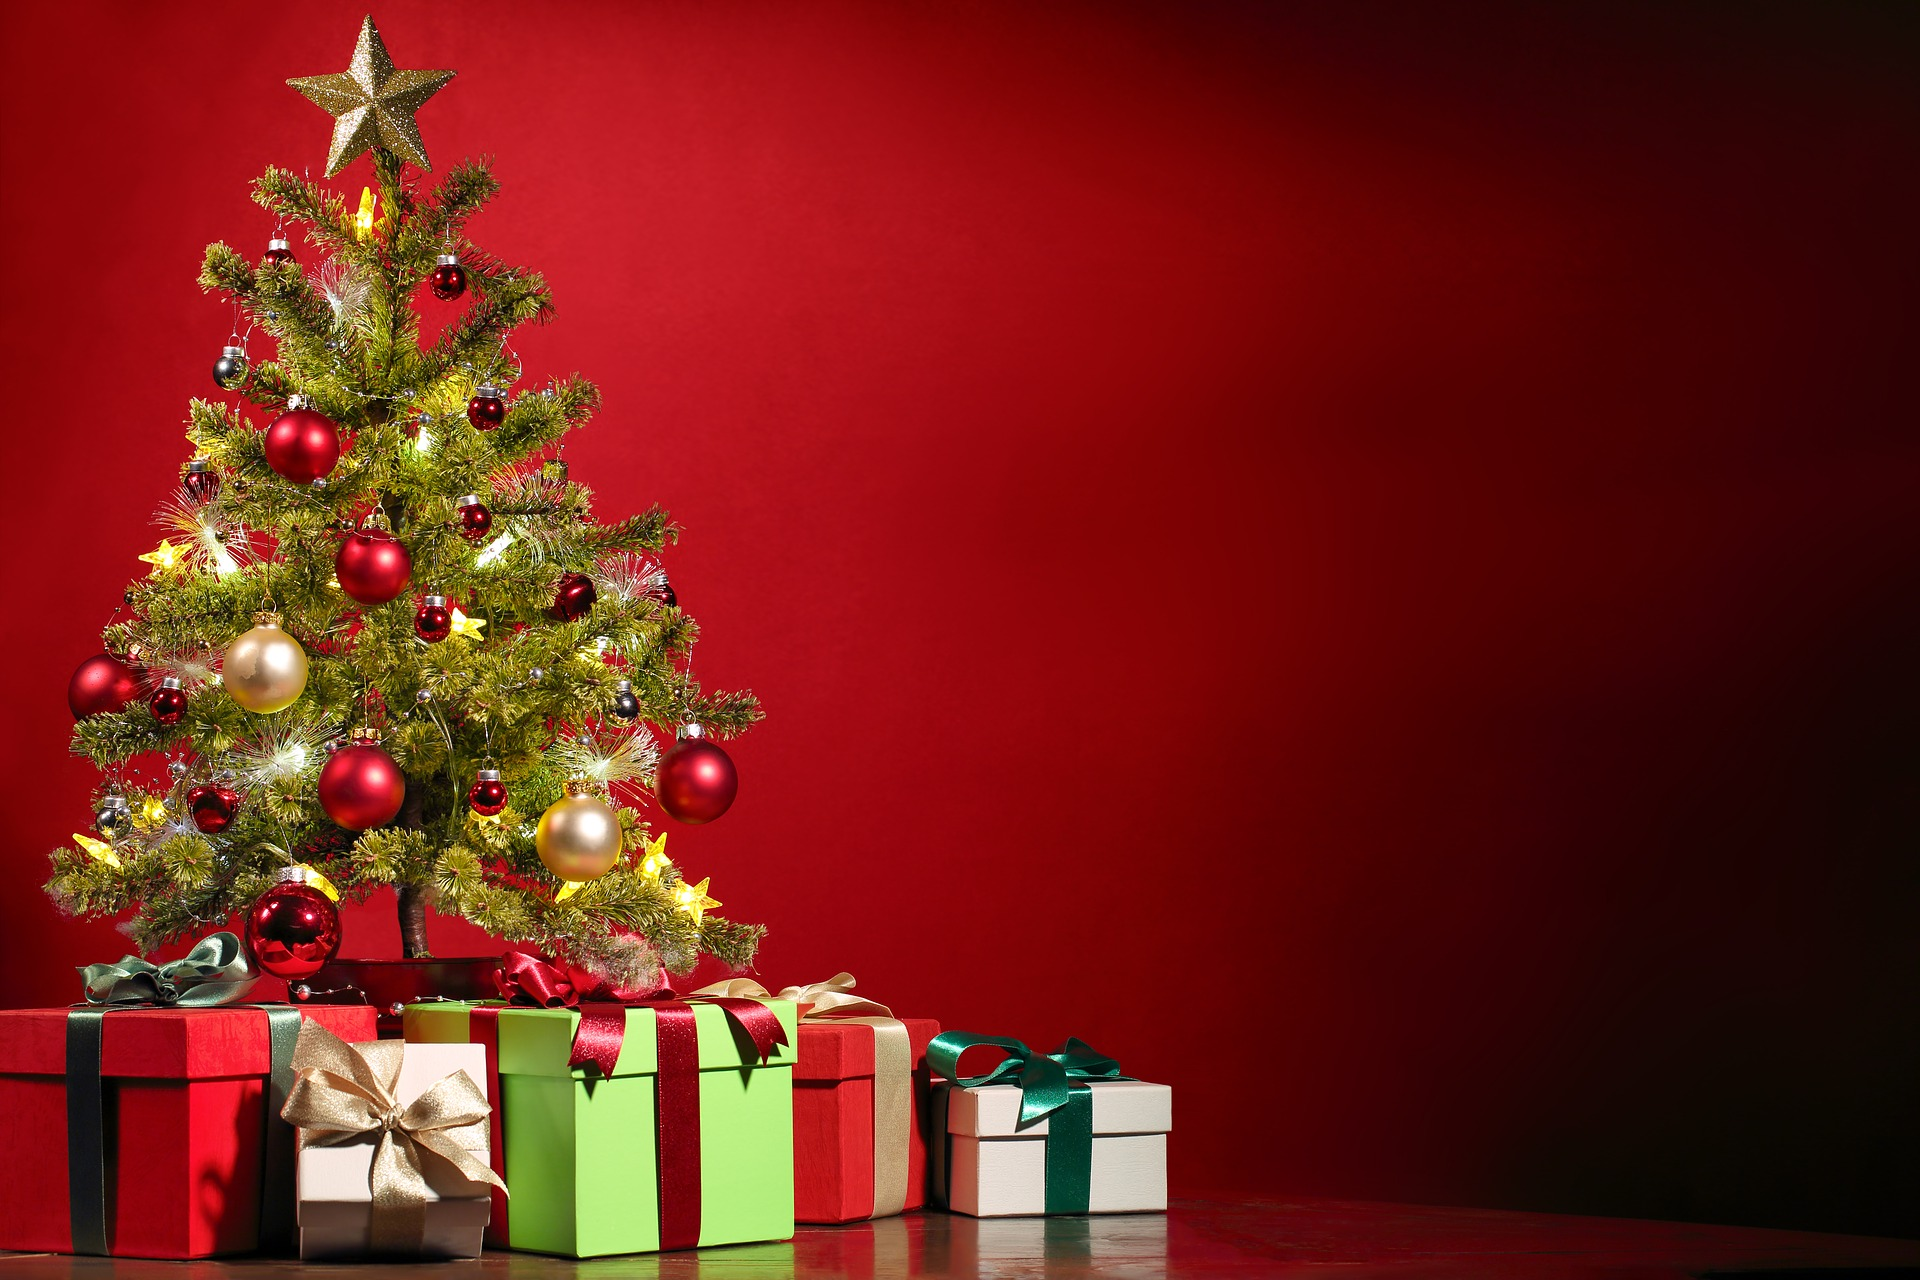 christmas tree, decorate your home for Christmas, Christmas decoration images, decoration ideas, for Christmas on the inside, easy outdoor Christmas decorating ideas, Christmas decorating blogs, traditional Christmas decorating ideas, homemade Christmas decoration ideas